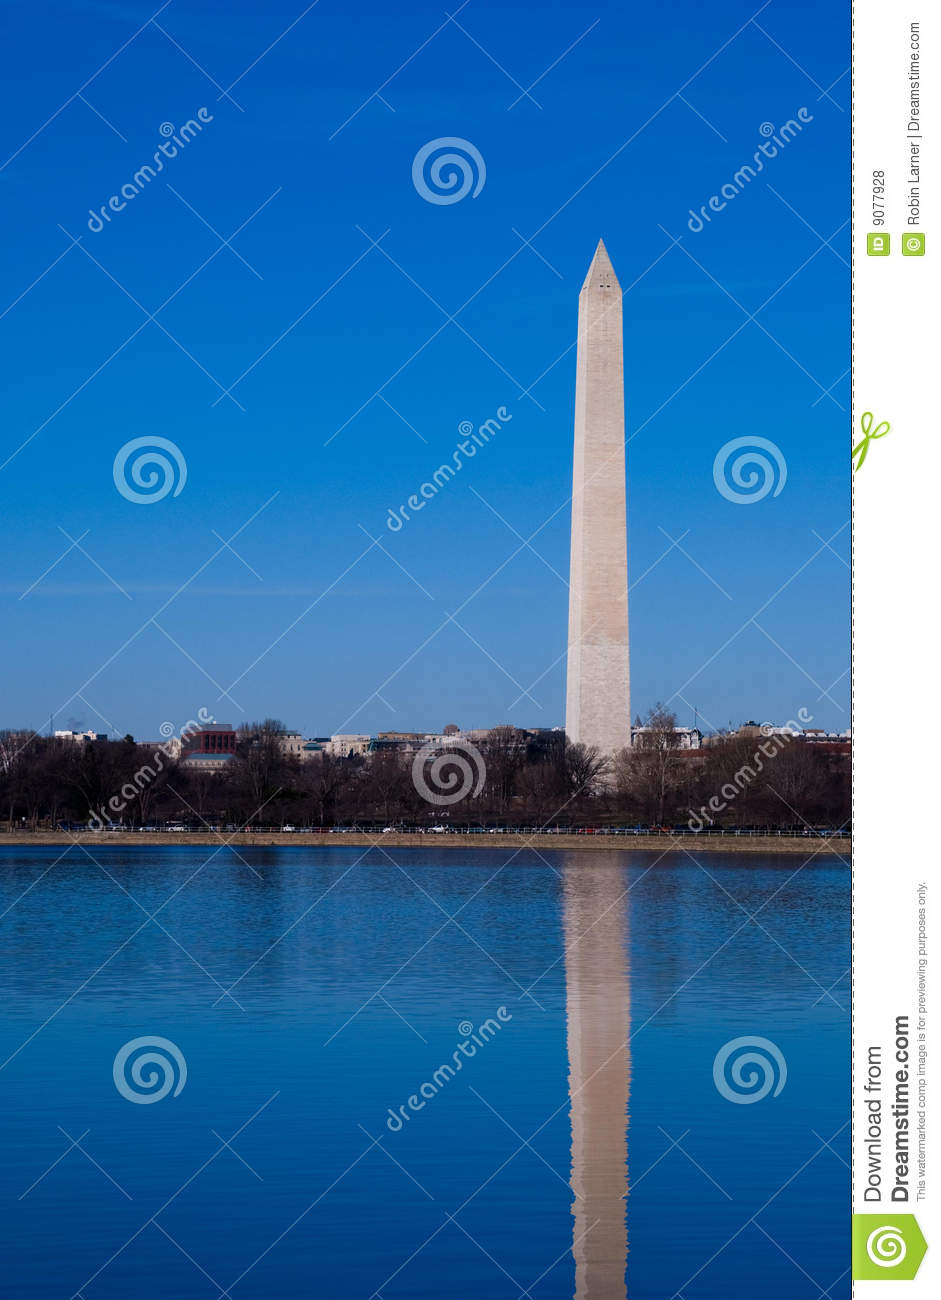 Washington-Denkmal-Reflexion